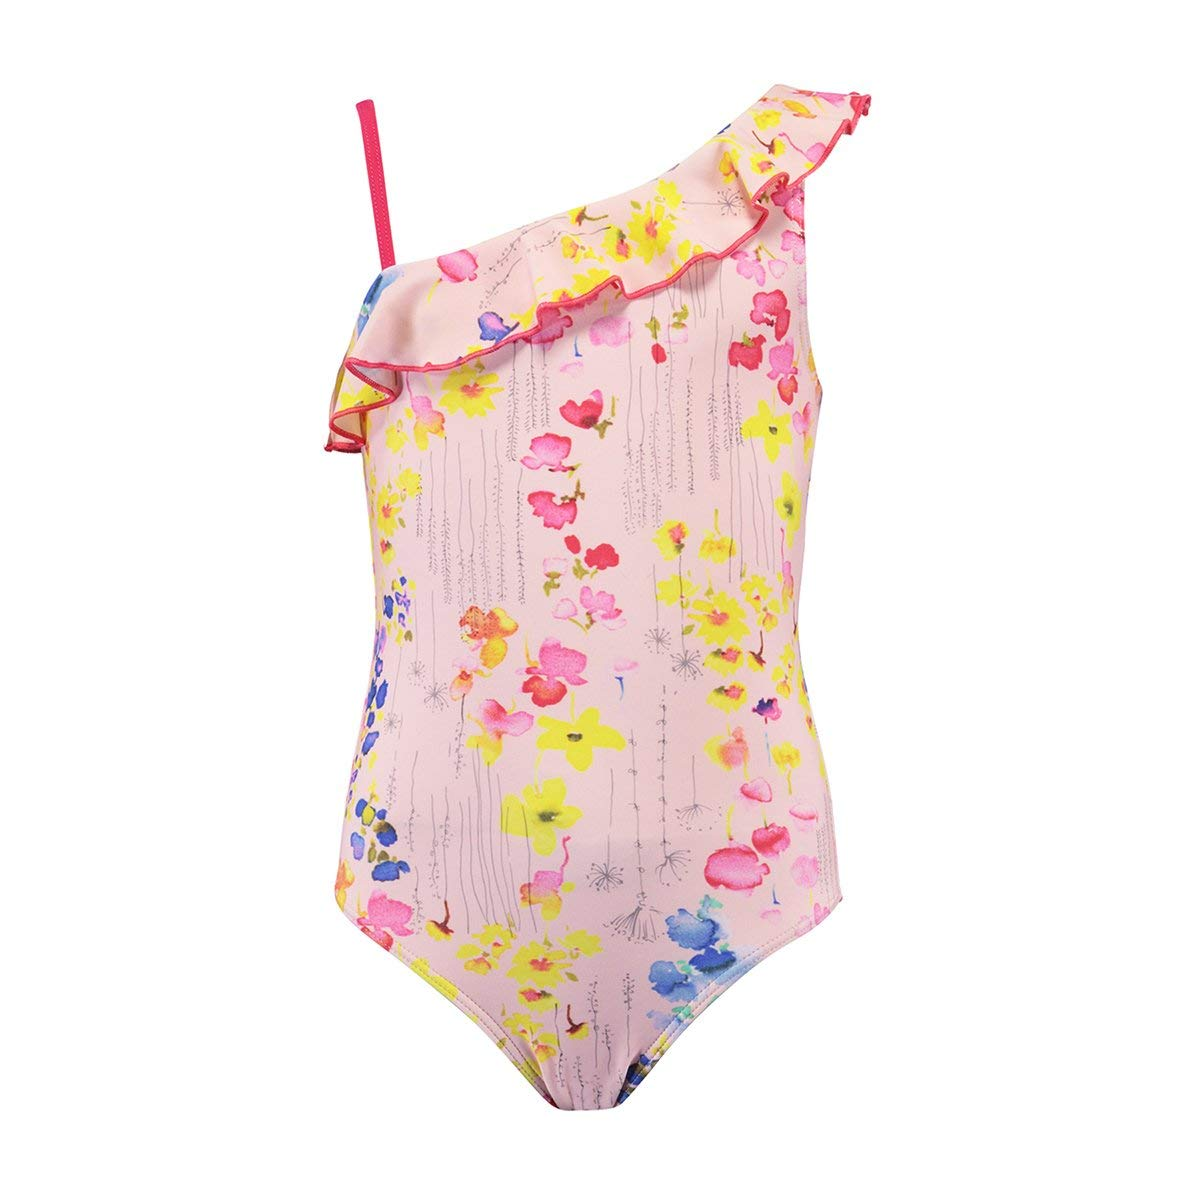 Barts Safi Suit Girls Swimsuit 140 cm Pink by B-Arts